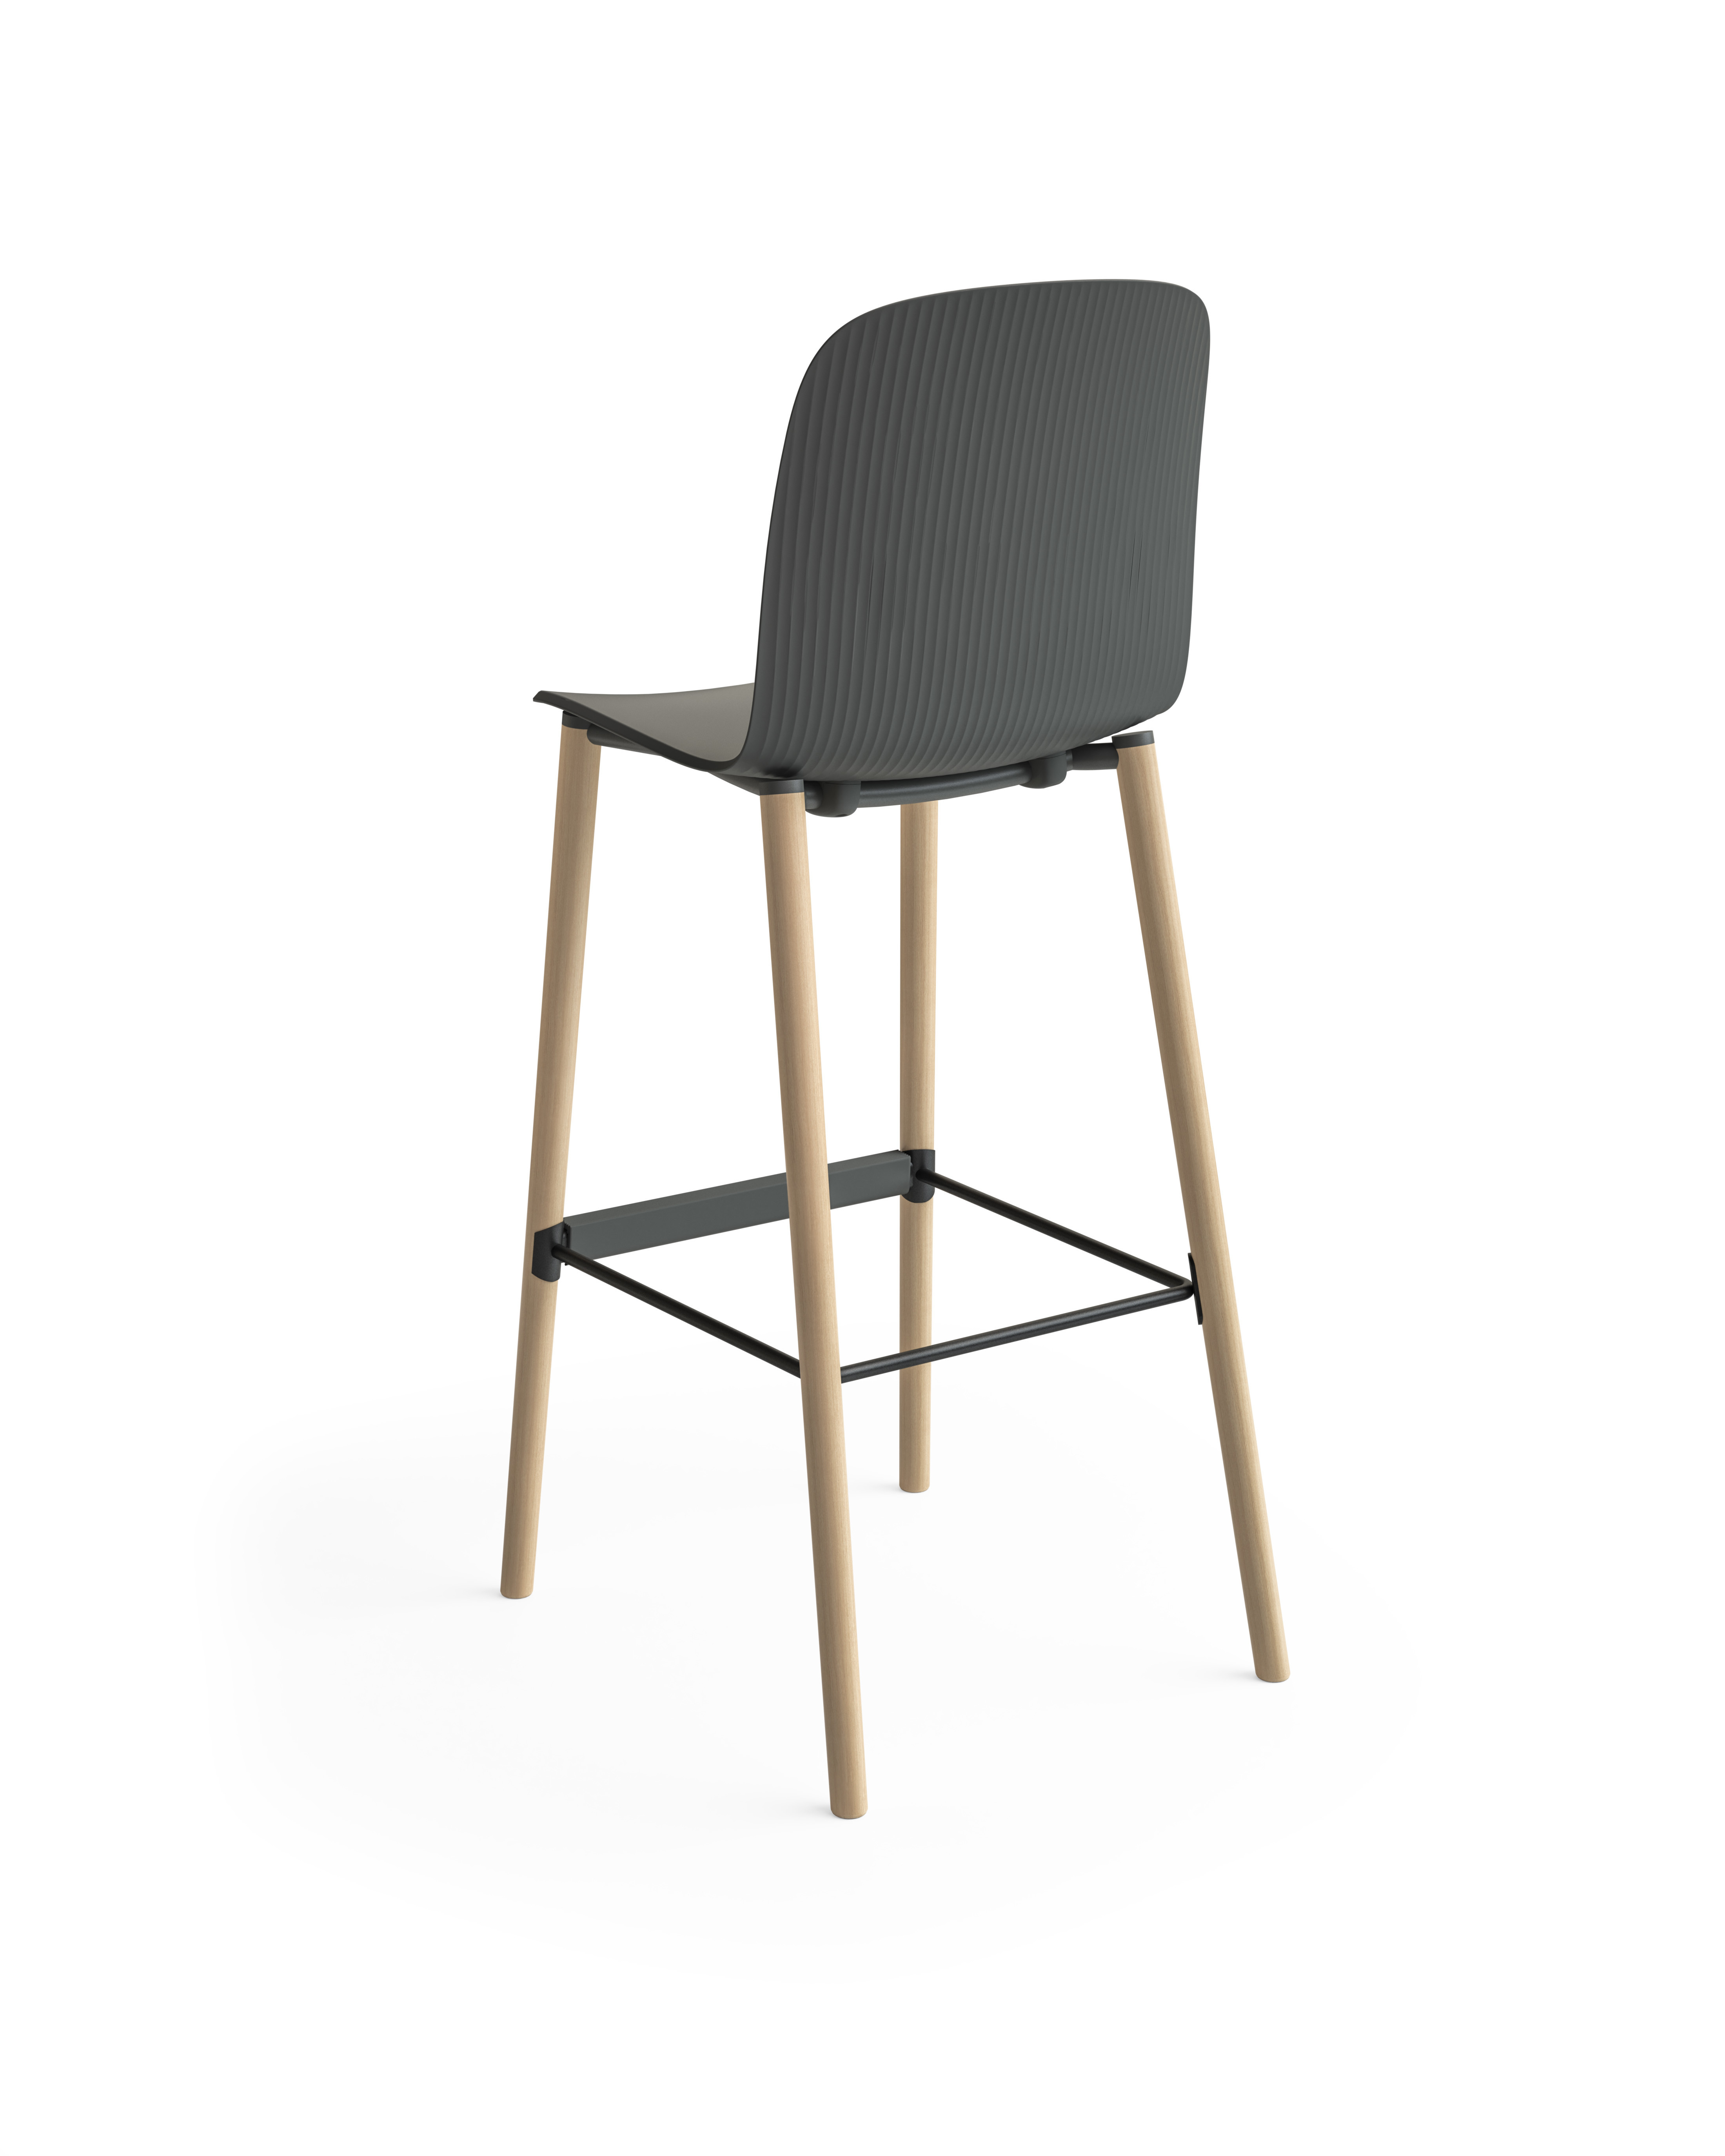 Tabouret de bar Cavatina de Steelcase - 4 pieds 02